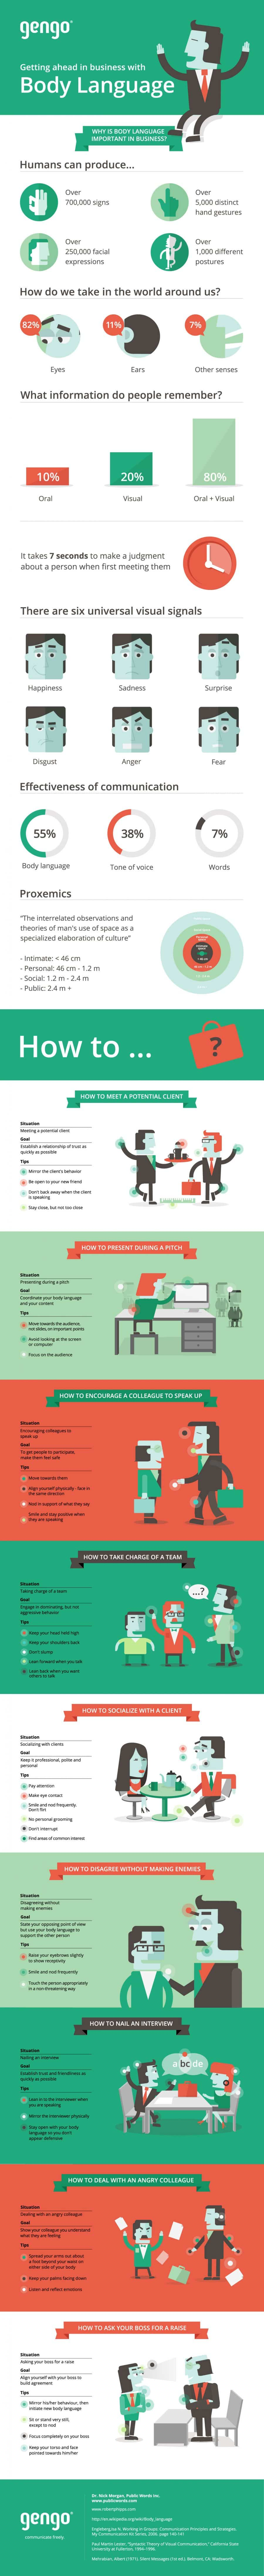 body-language-in-business-infographic